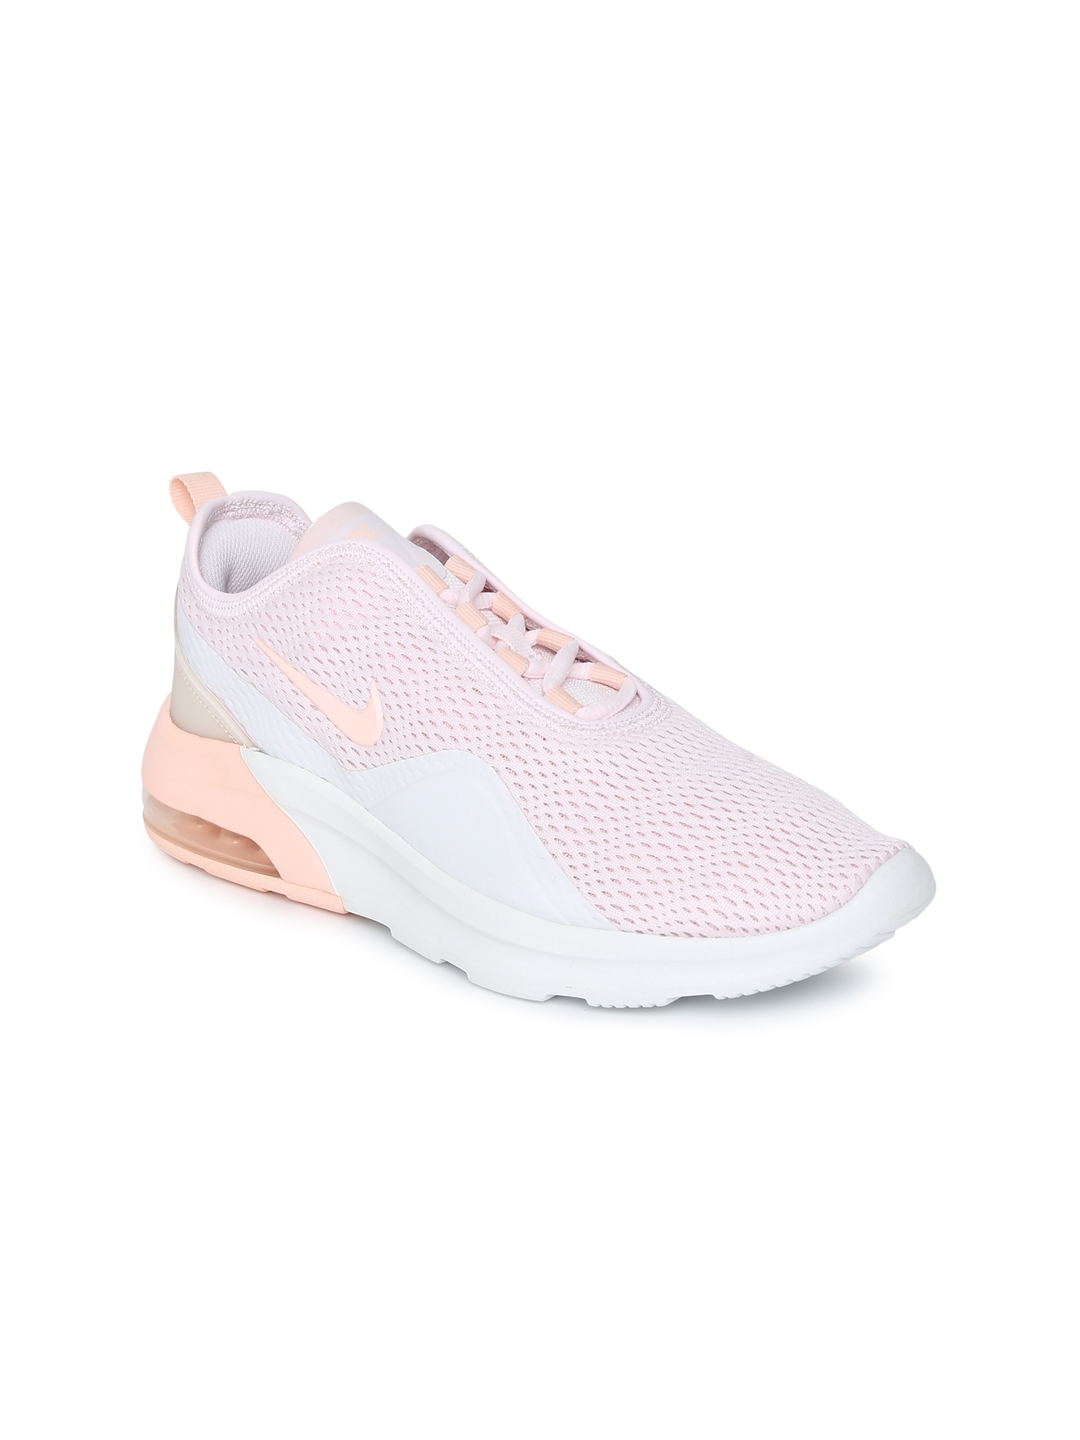 Nike Women AIR MAX MOTION 2 Pink Sneakers